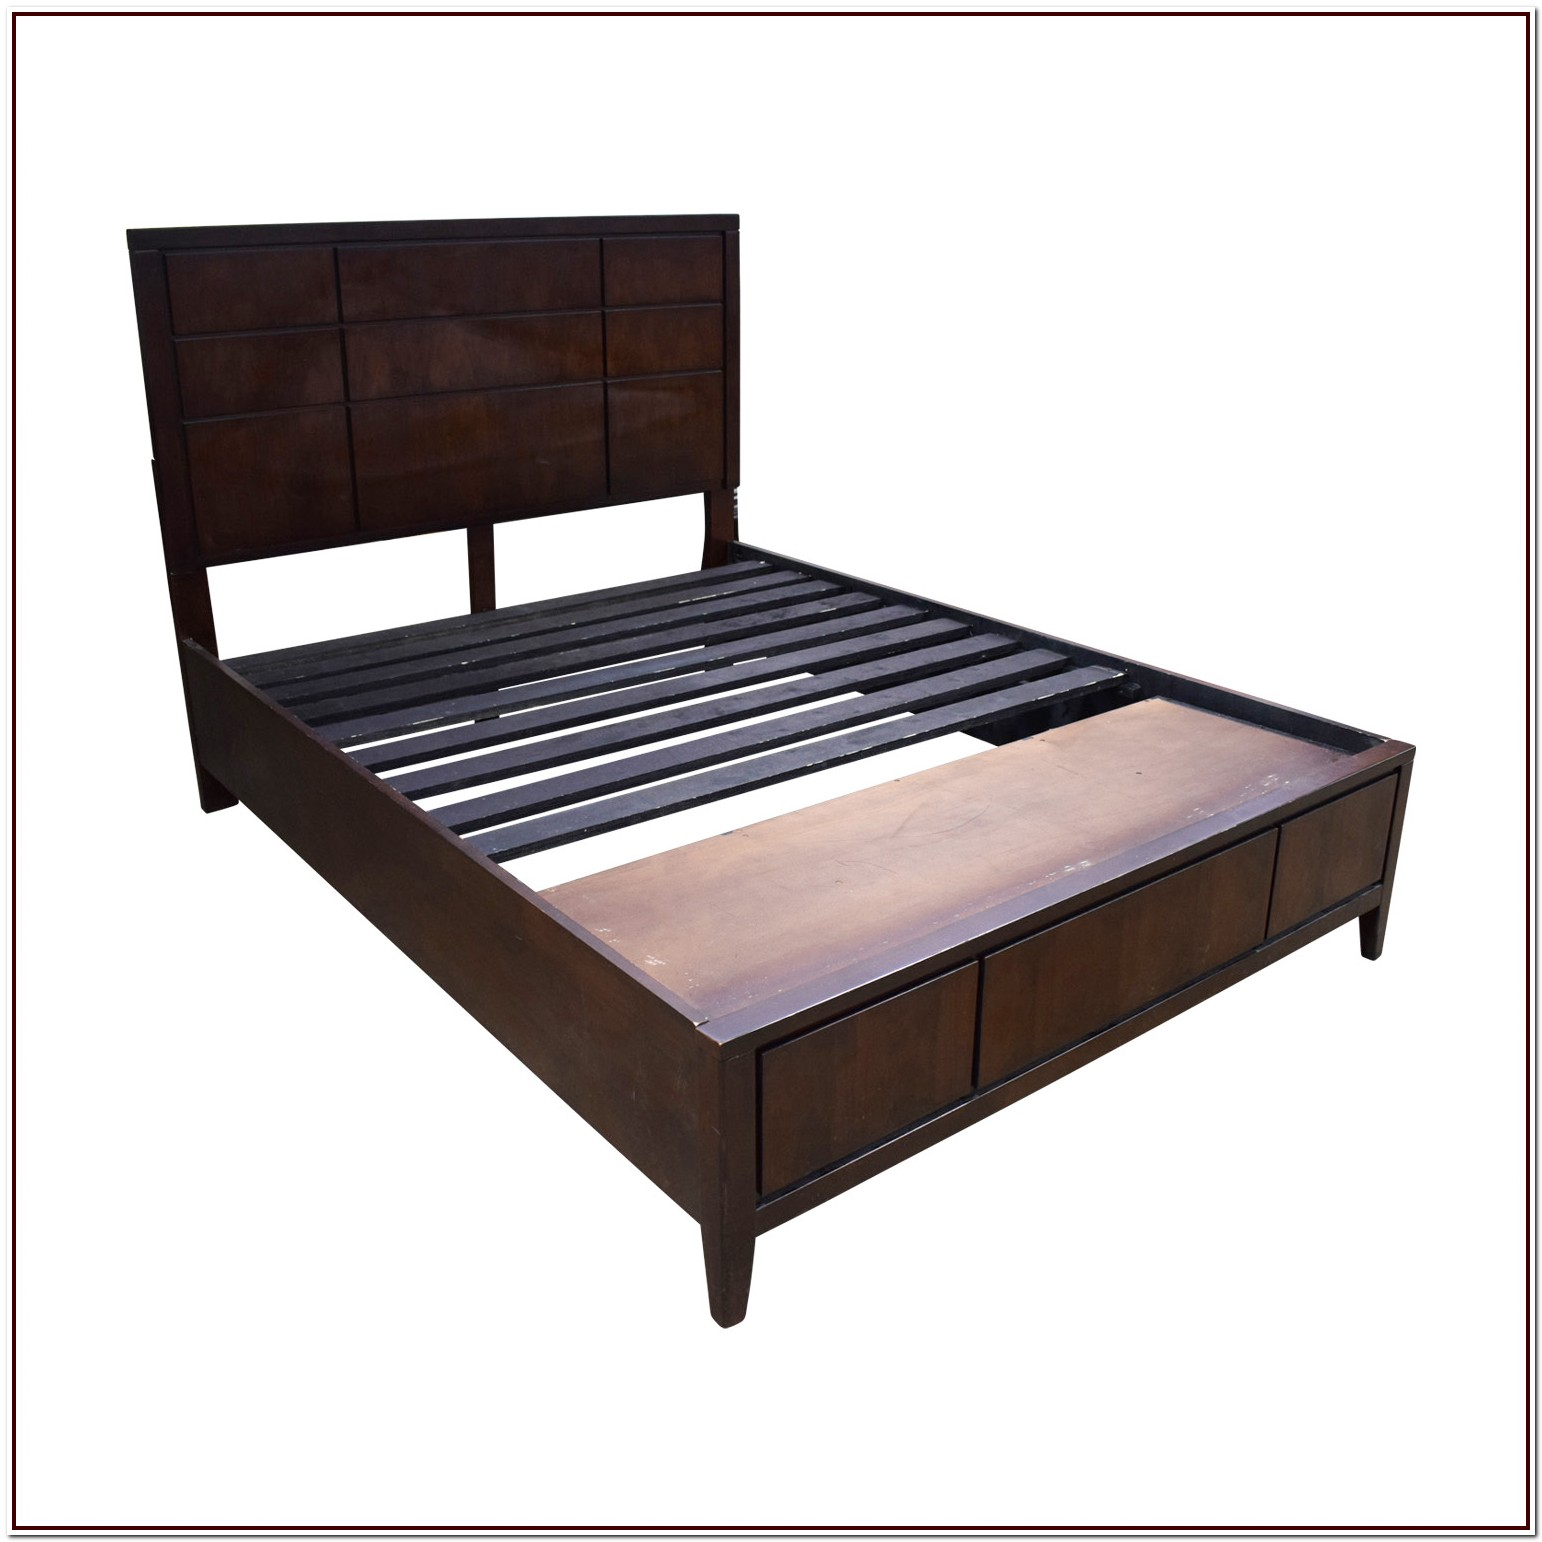 Queen Metal Platform Bed Frame With Headboard